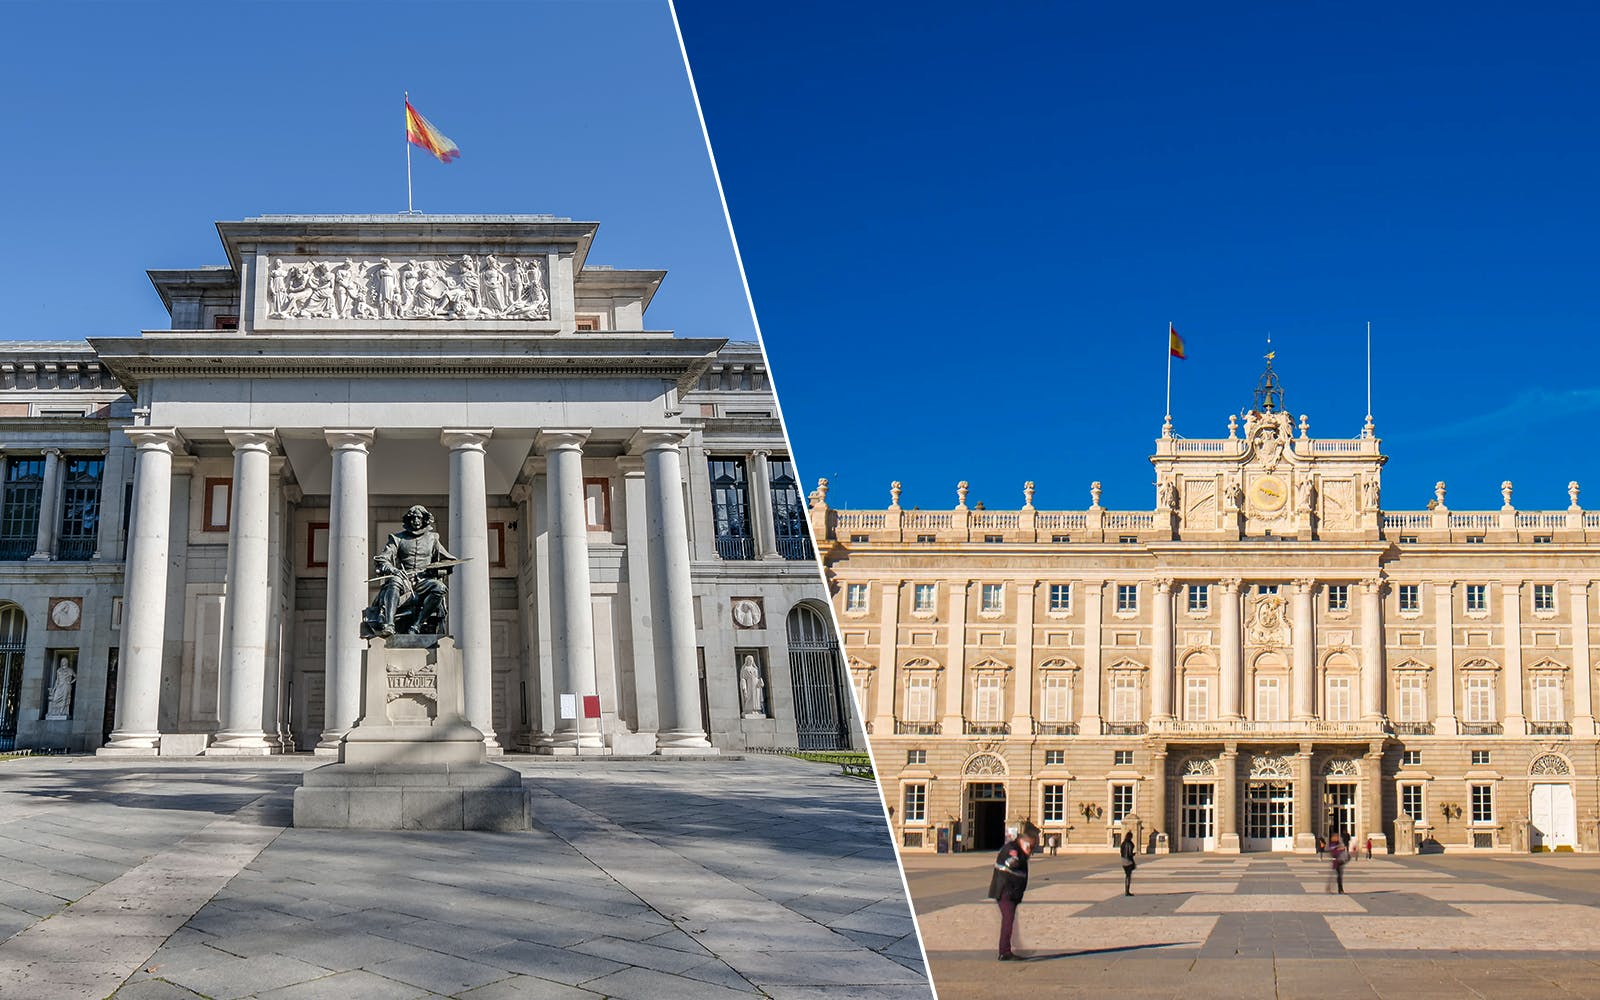 Skip the Line Tickets to the Royal Palace of Madrid and the Prado Museum